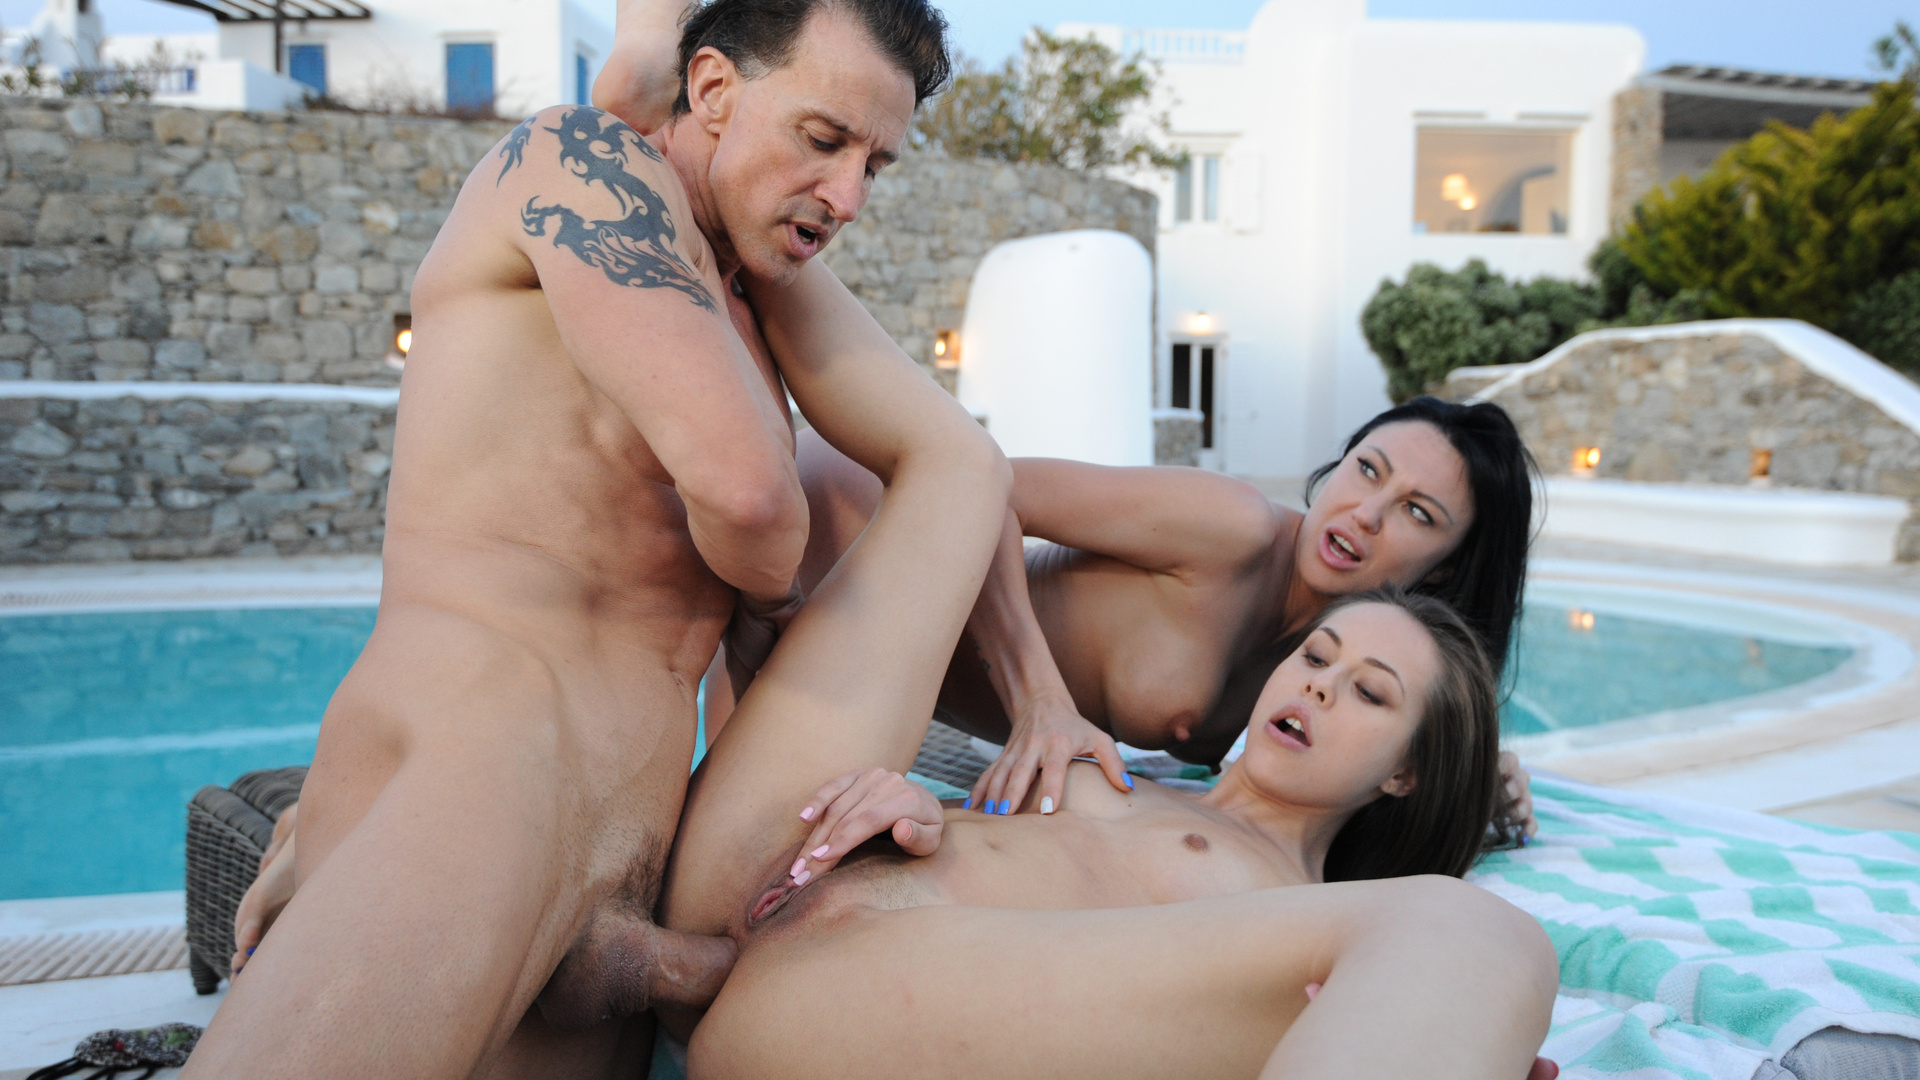 Banging the 19-year-old neighbor with my wife